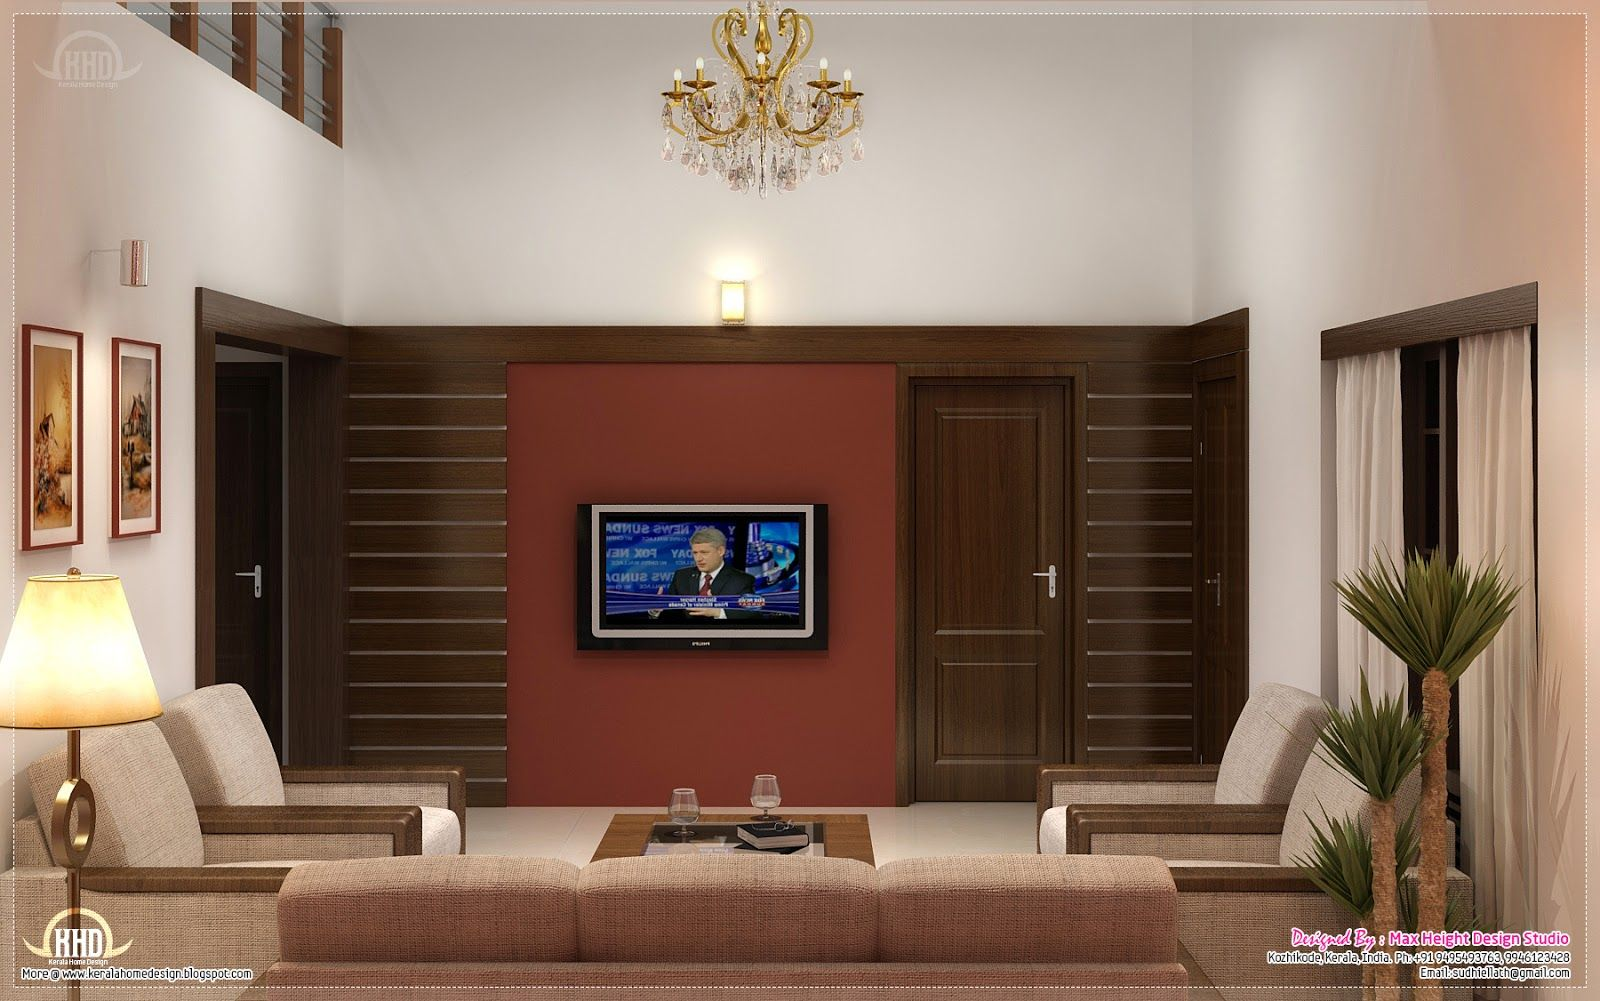 Living room ideas kerala | Home interior design, Home ...